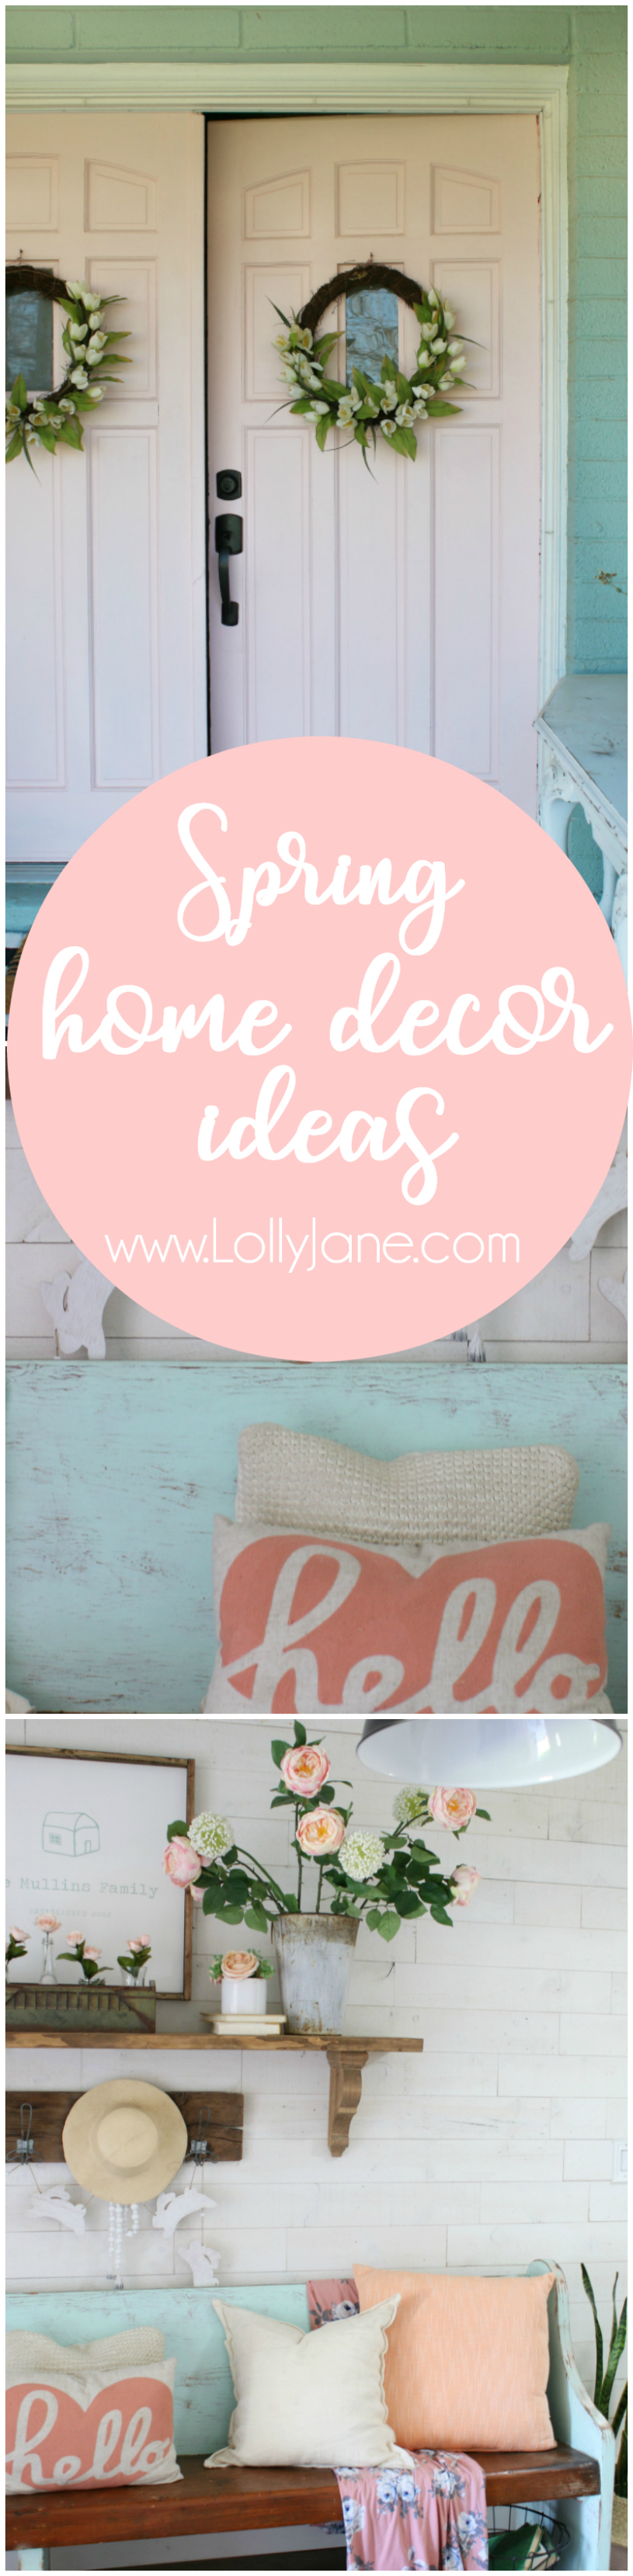 Visit our spring home tour ideas! I love our painted pink doors and had fun adding faux flowers to create a spring mantel using items around my home!